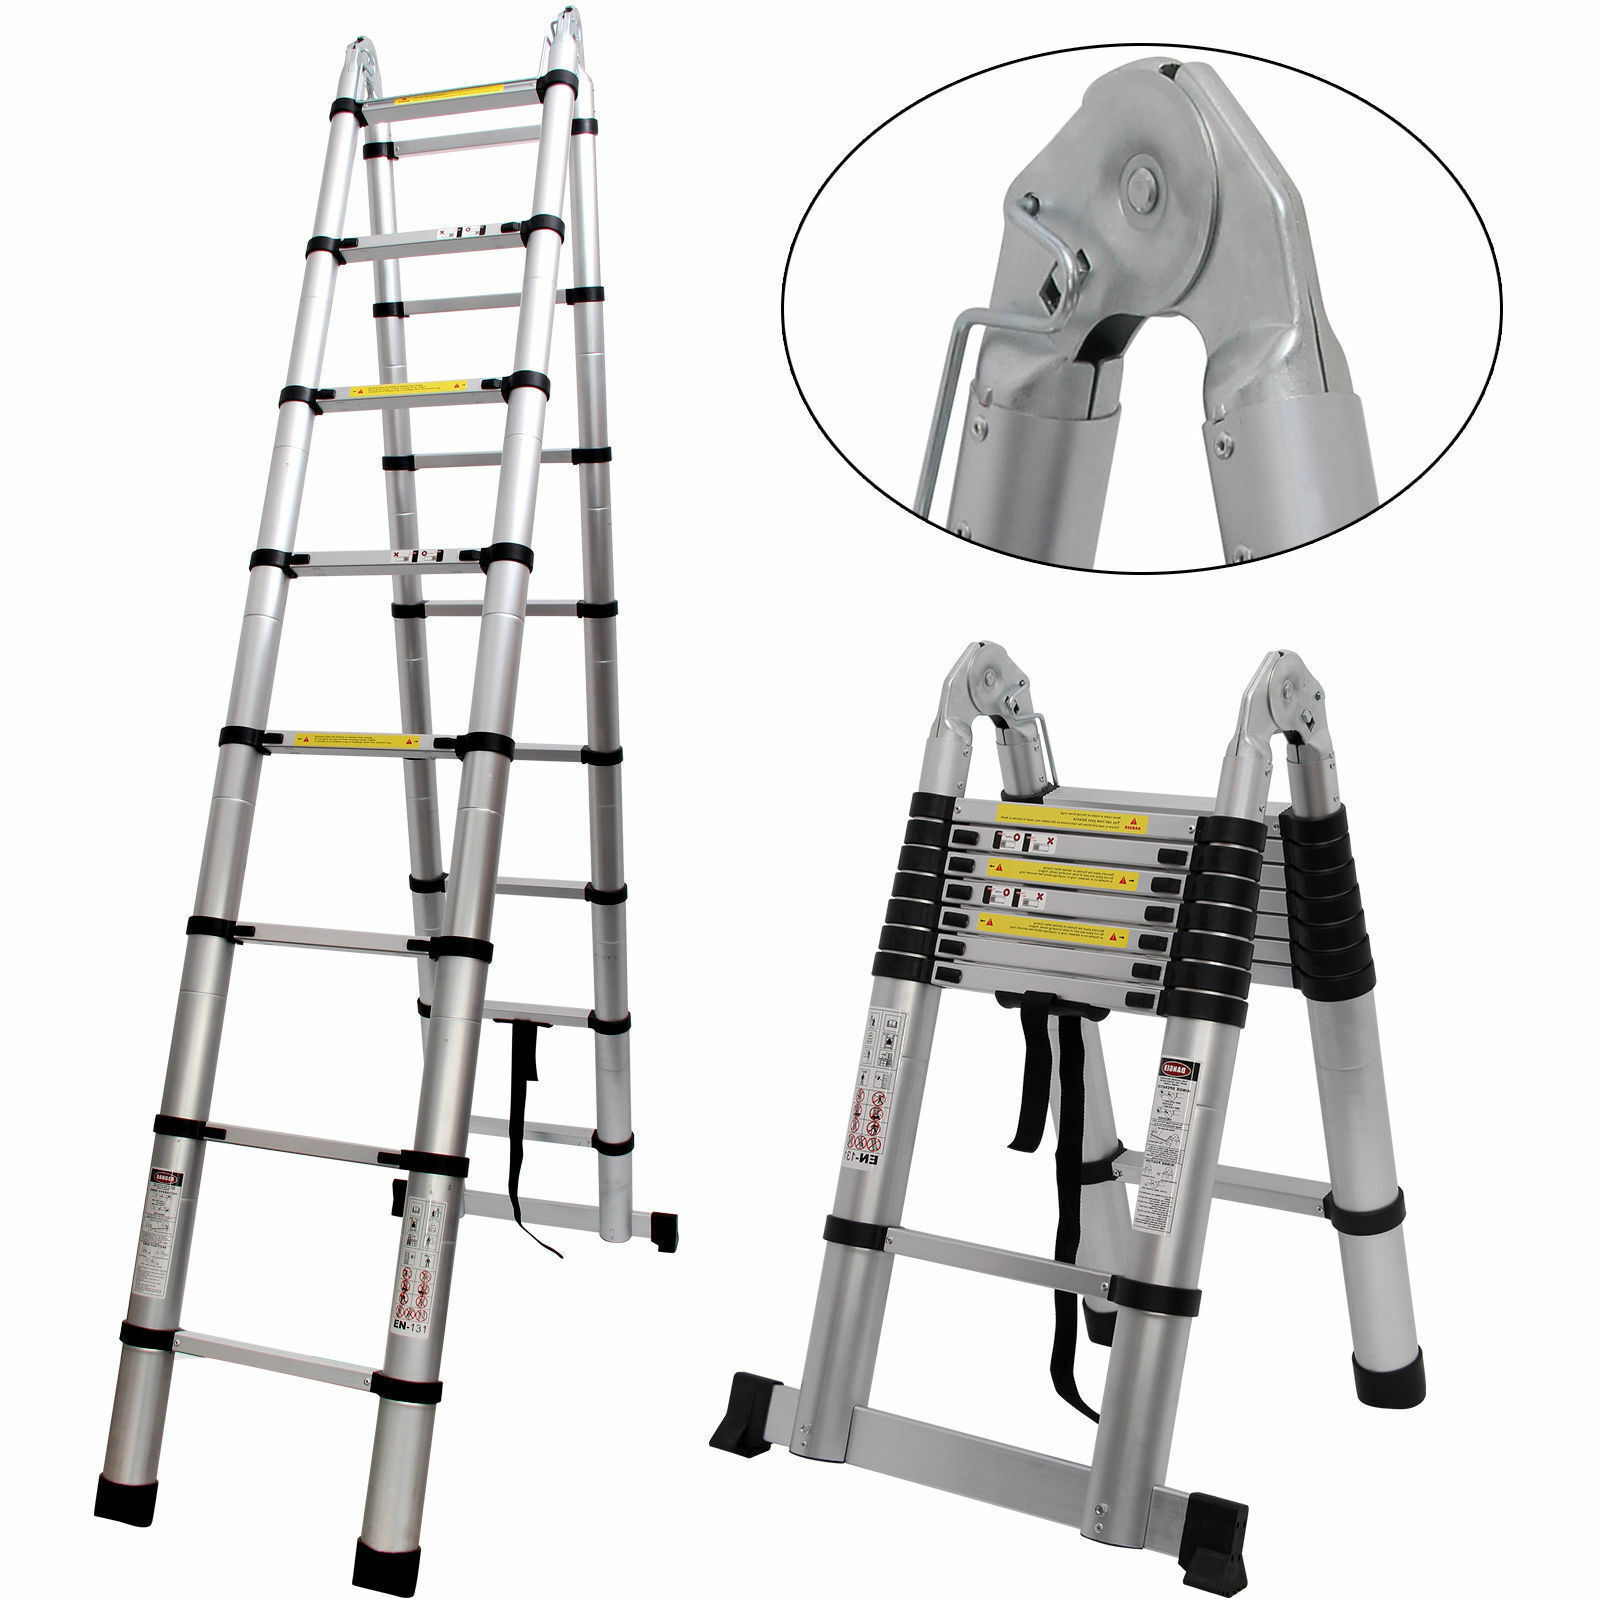 Cosco telescoping ladder rubber roof patch home depot